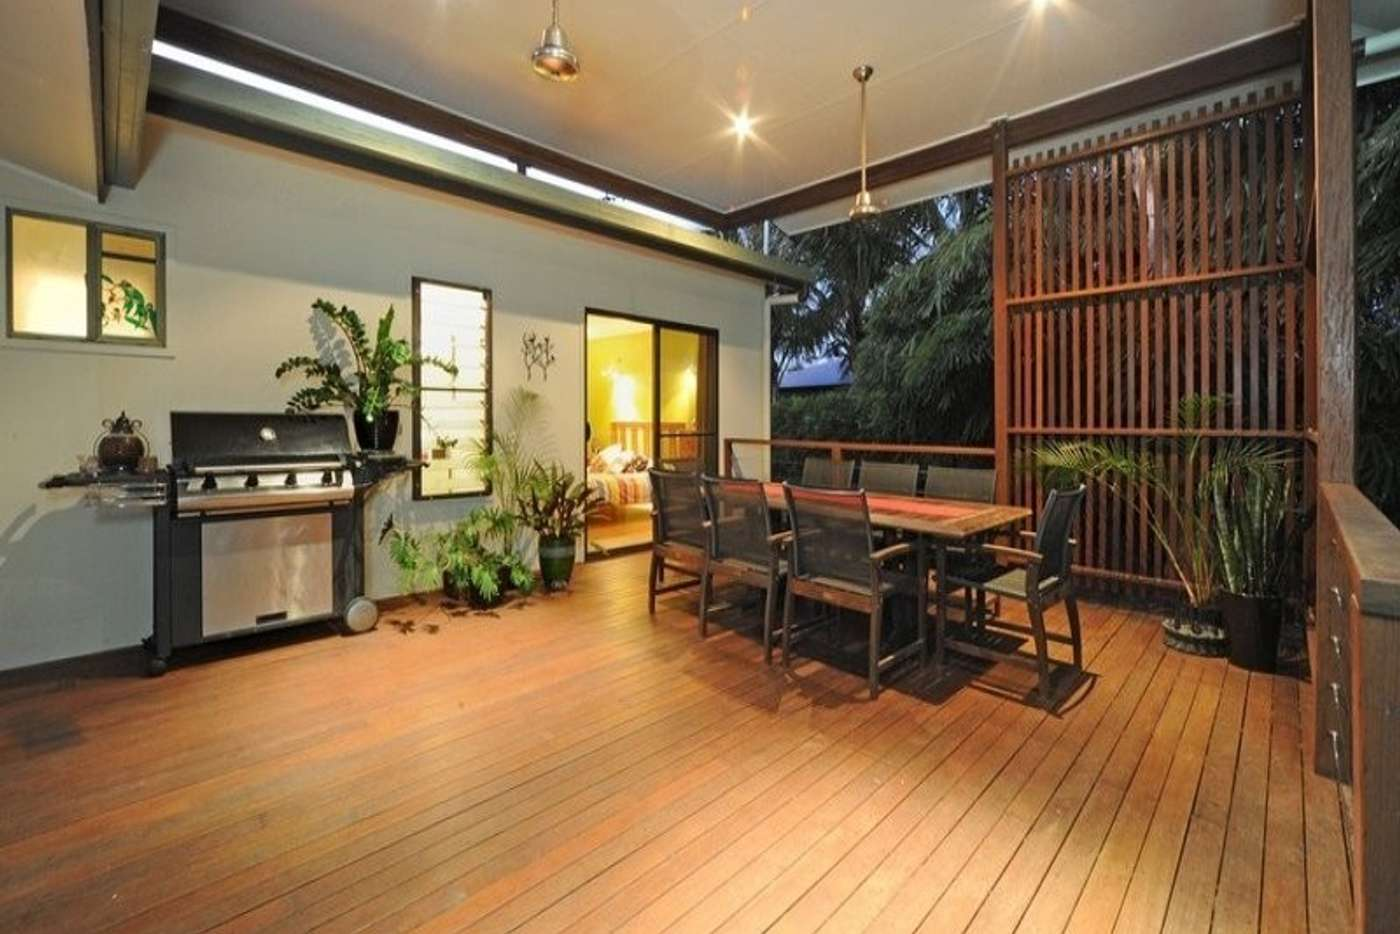 Main view of Homely house listing, 11 Wildlife Road, Jubilee Pocket QLD 4802